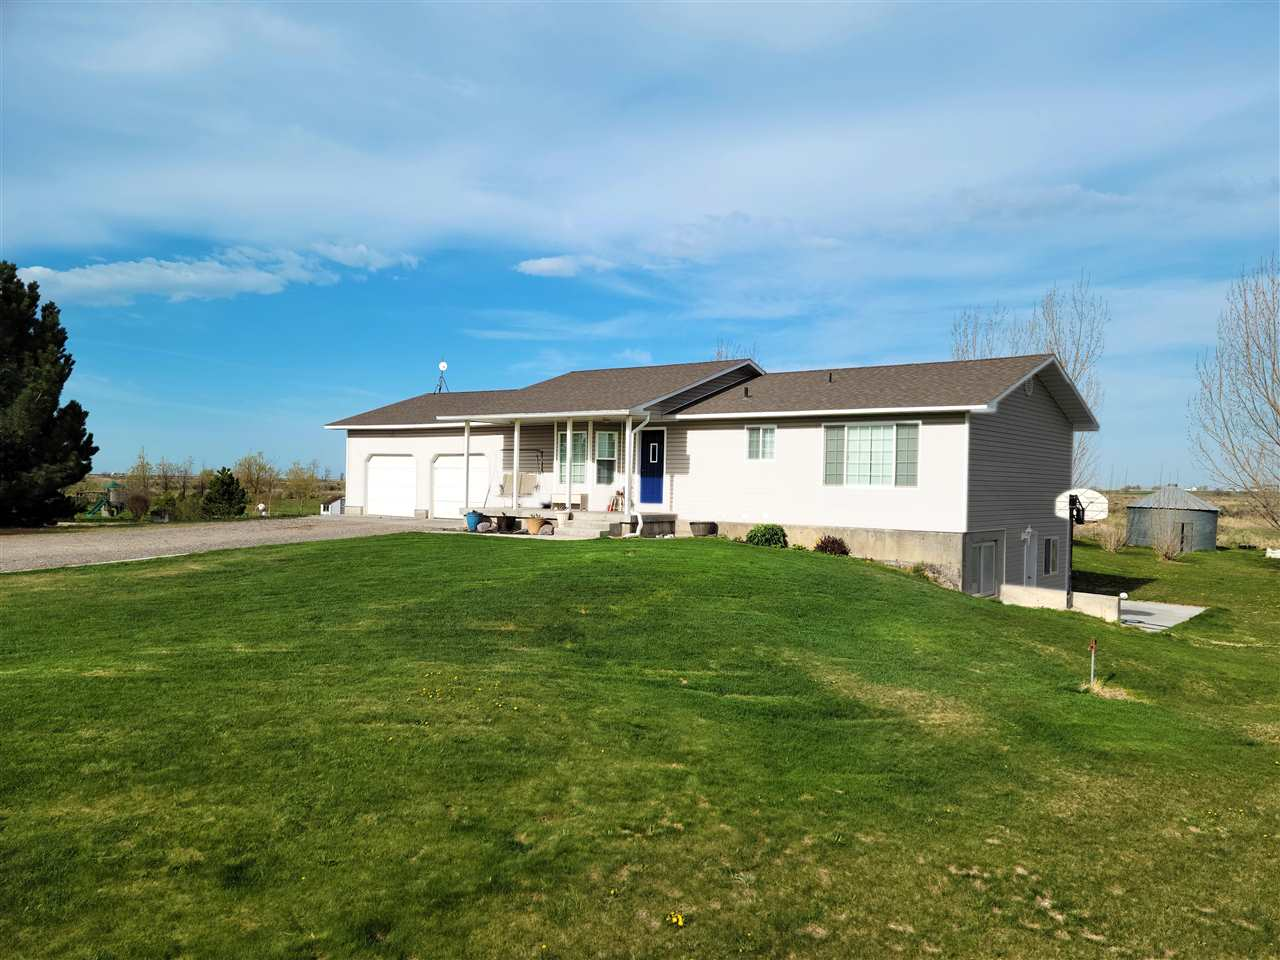 756 S 1500 W Property Photo - Pingree, ID real estate listing